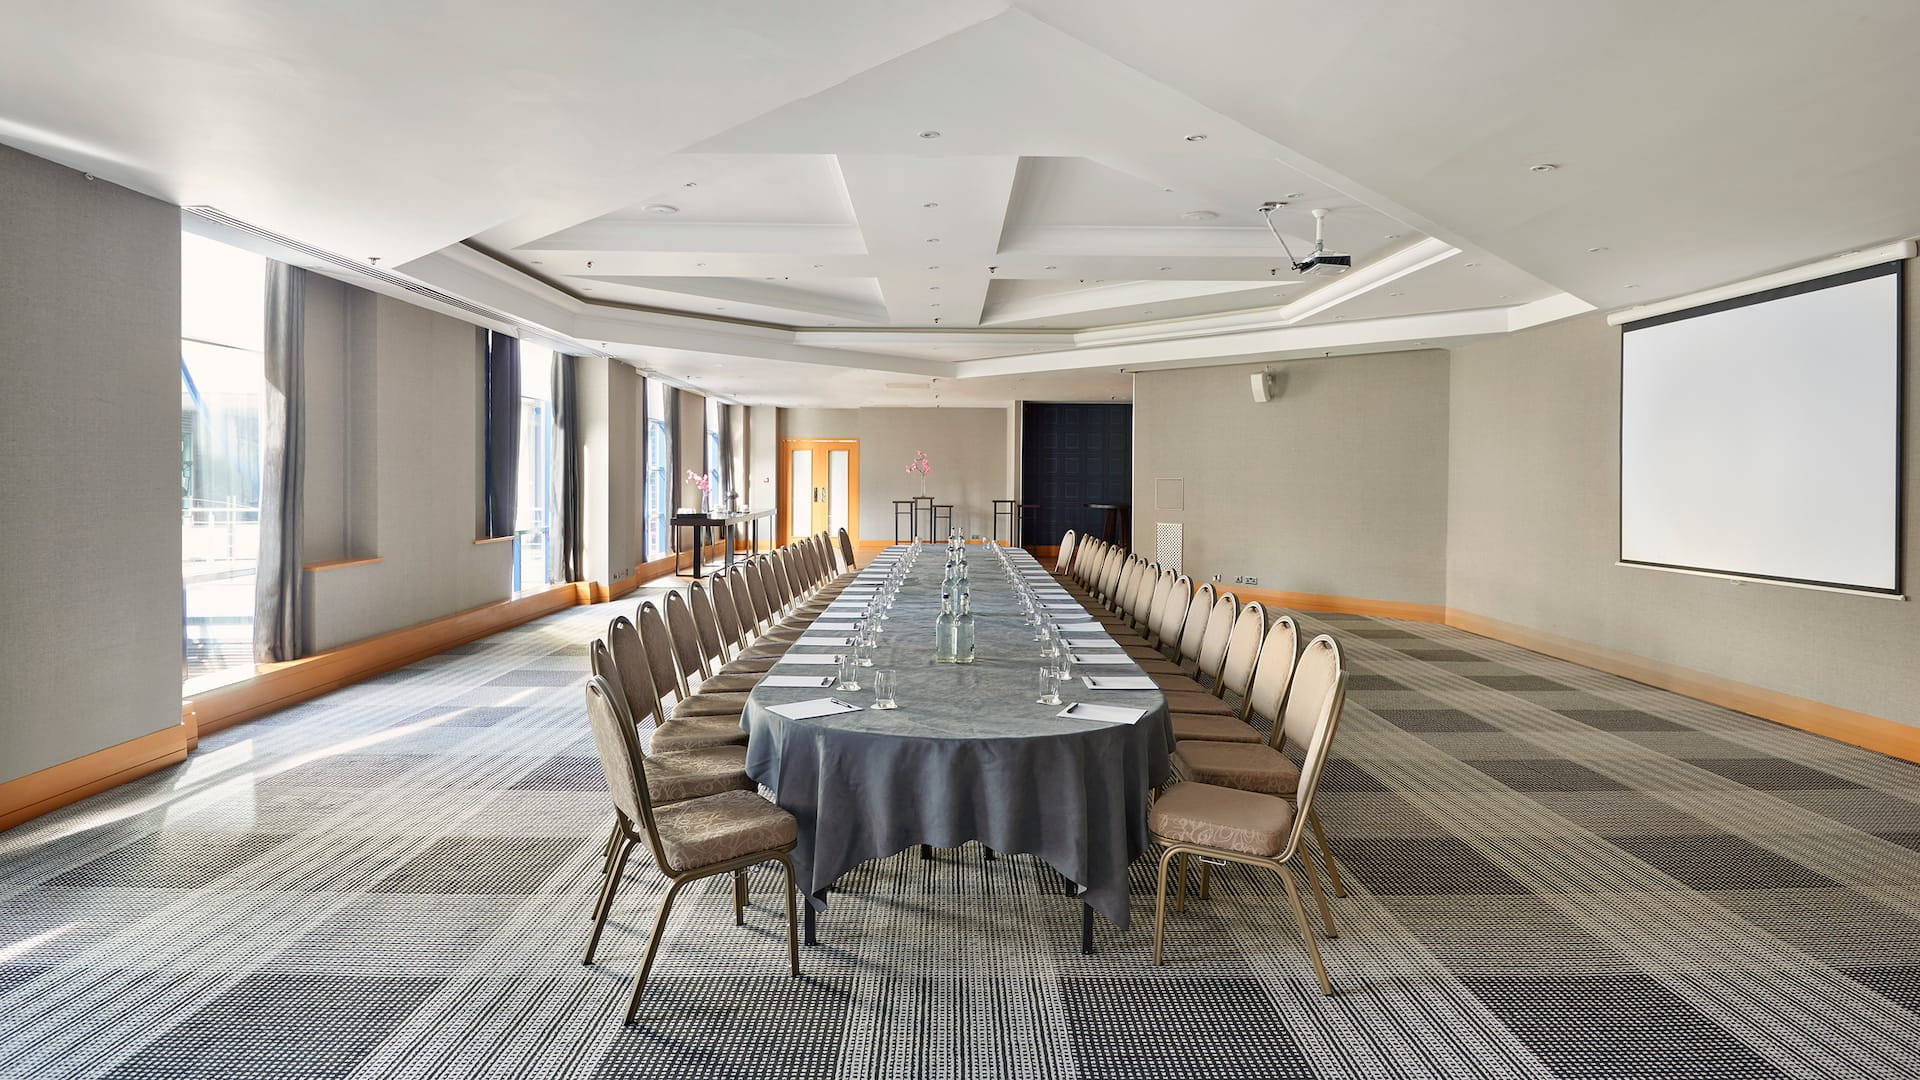 Boardroom setup with natural daylight and projector at Hyatt Regency Birmingham